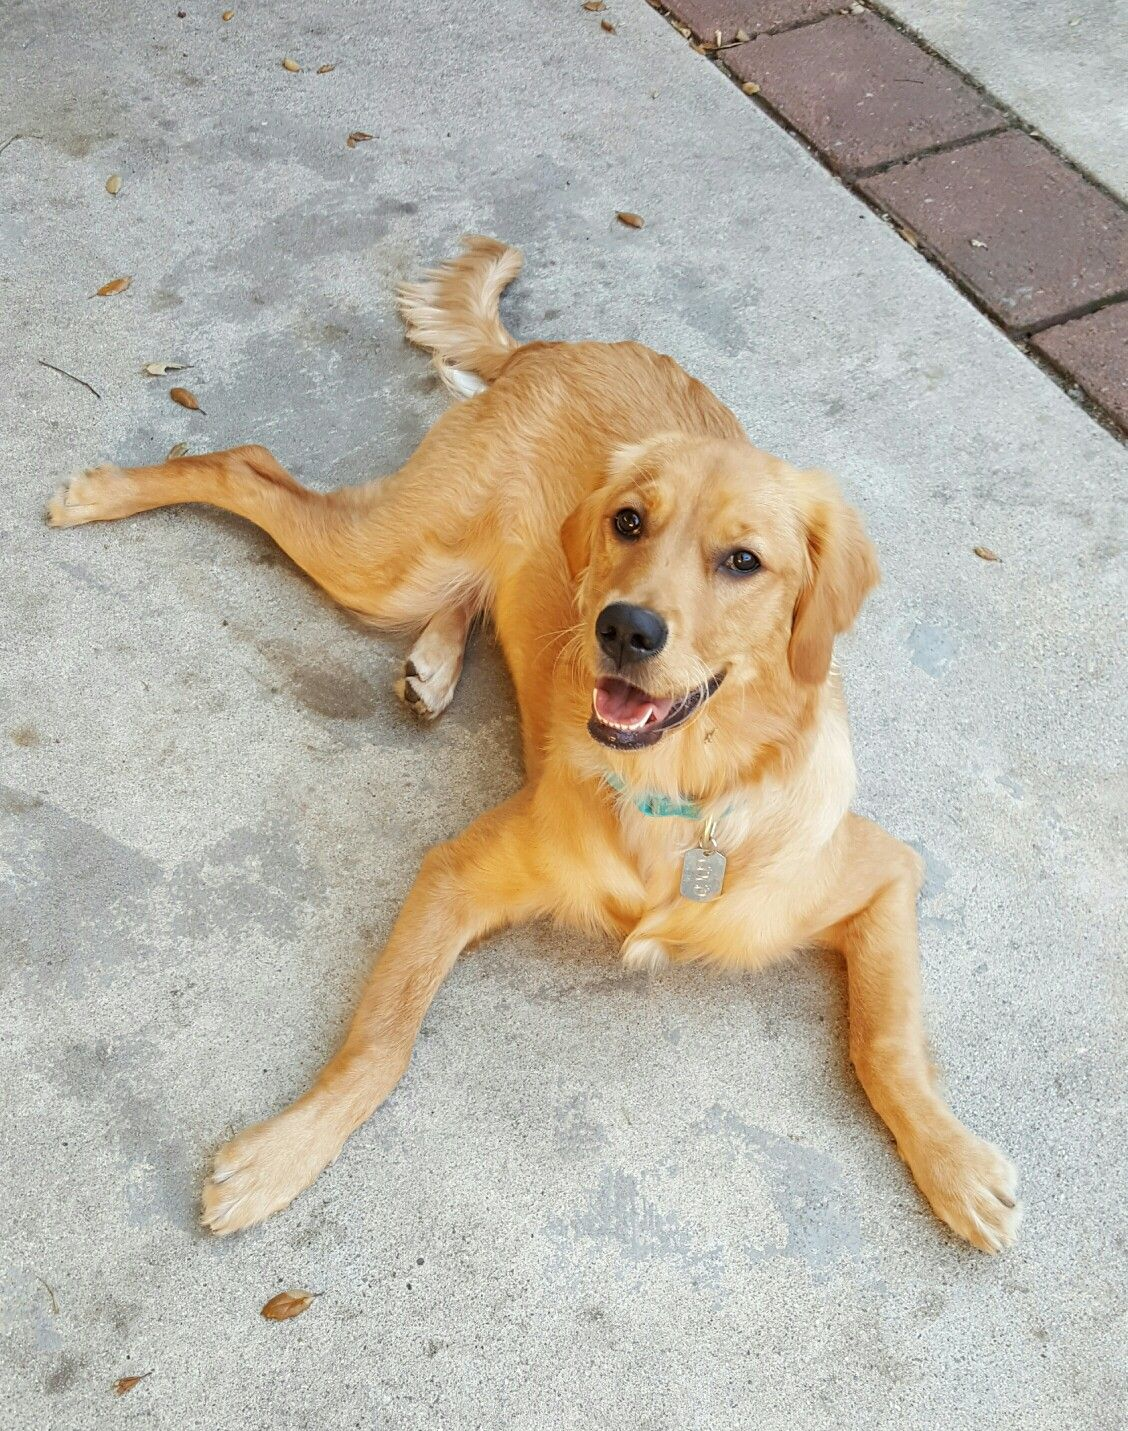 Coco Golden Retriever 8 Months Old Golden Retriever Beautiful